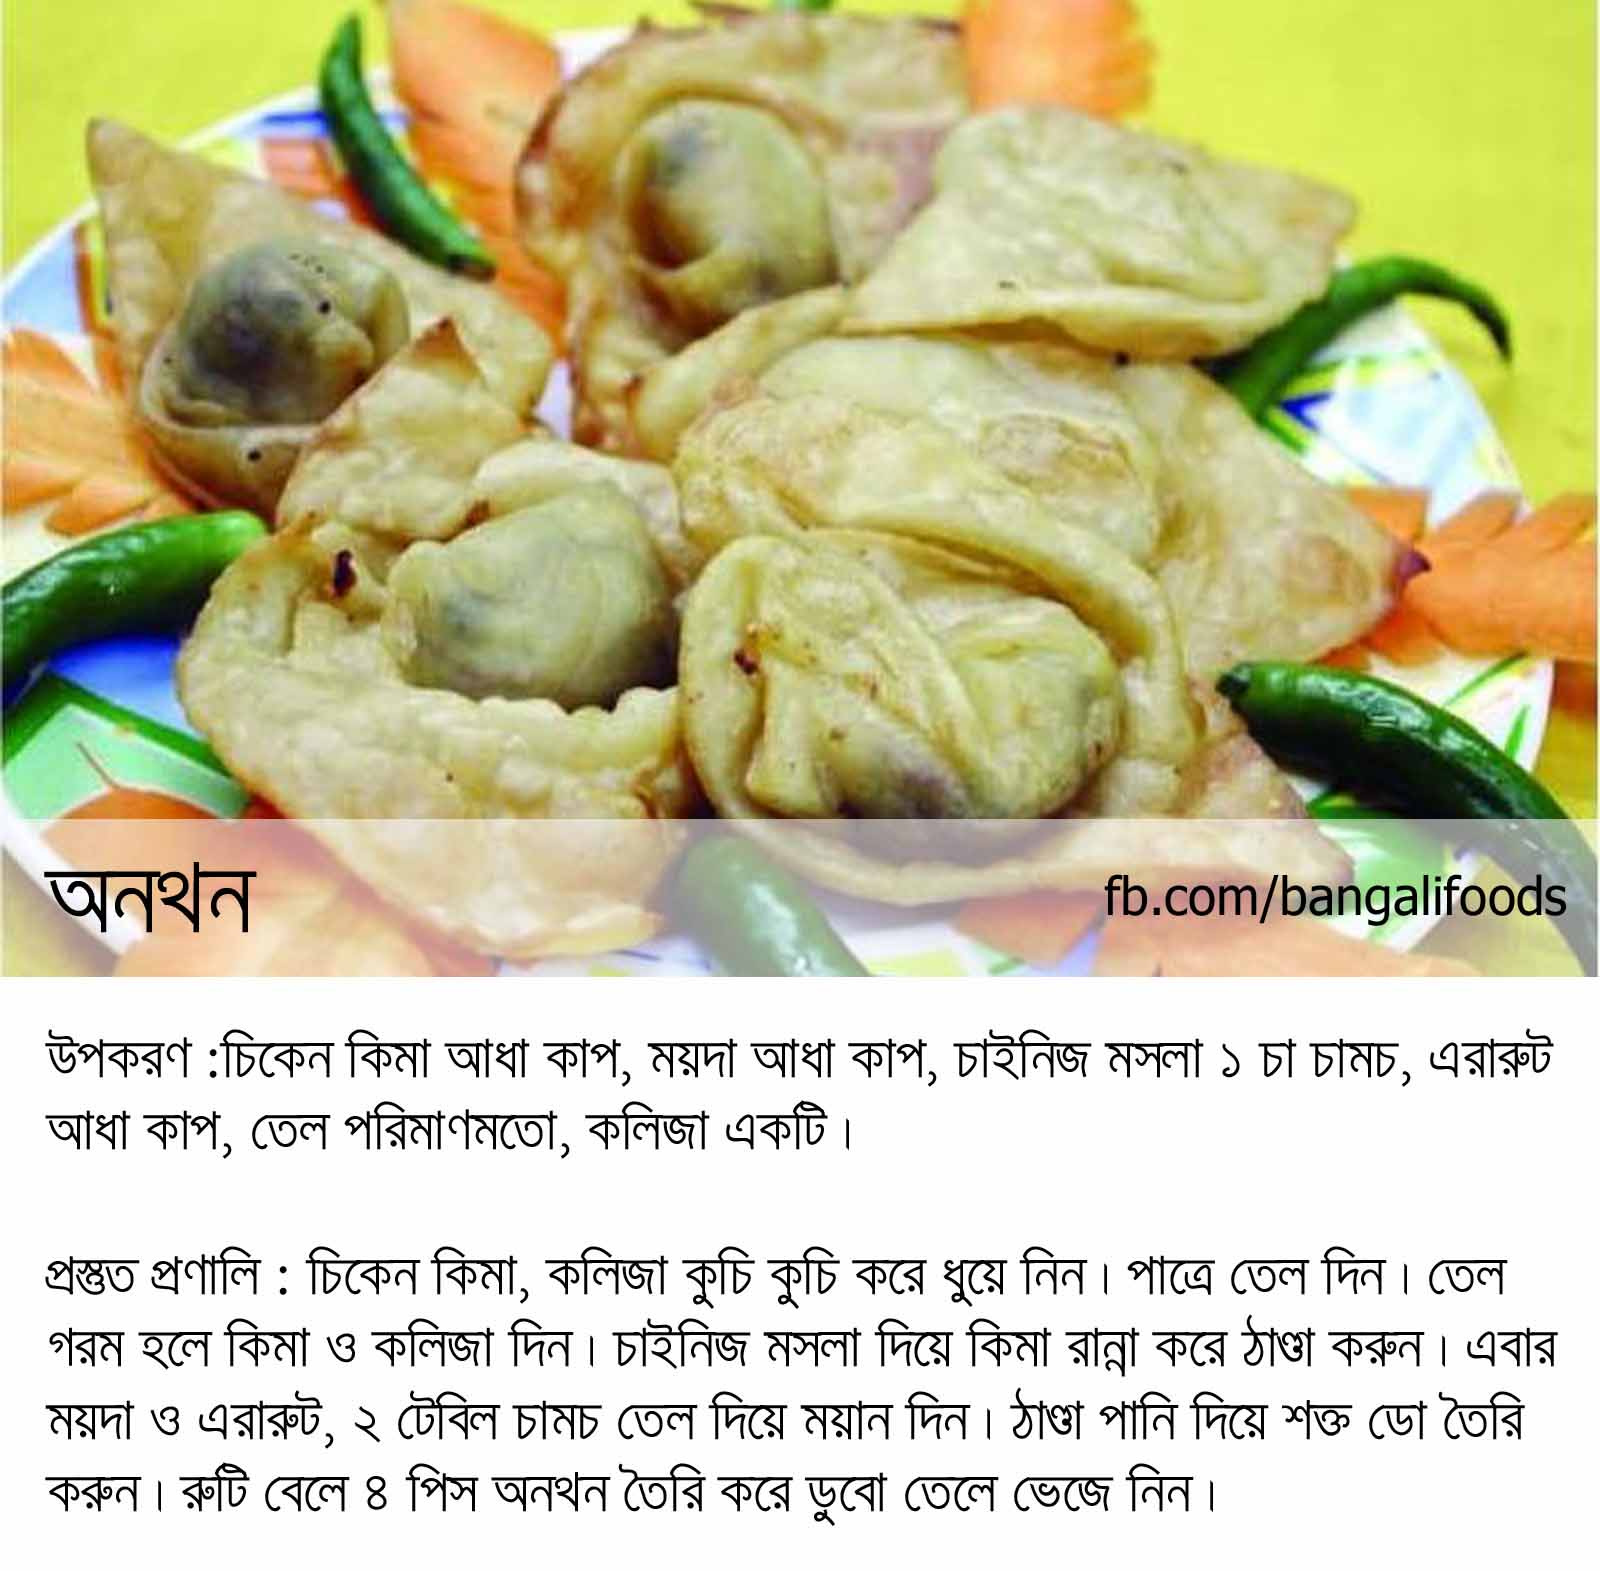 Bangali foods snack food recipes in bengali wonton with chicken in bangla language forumfinder Choice Image